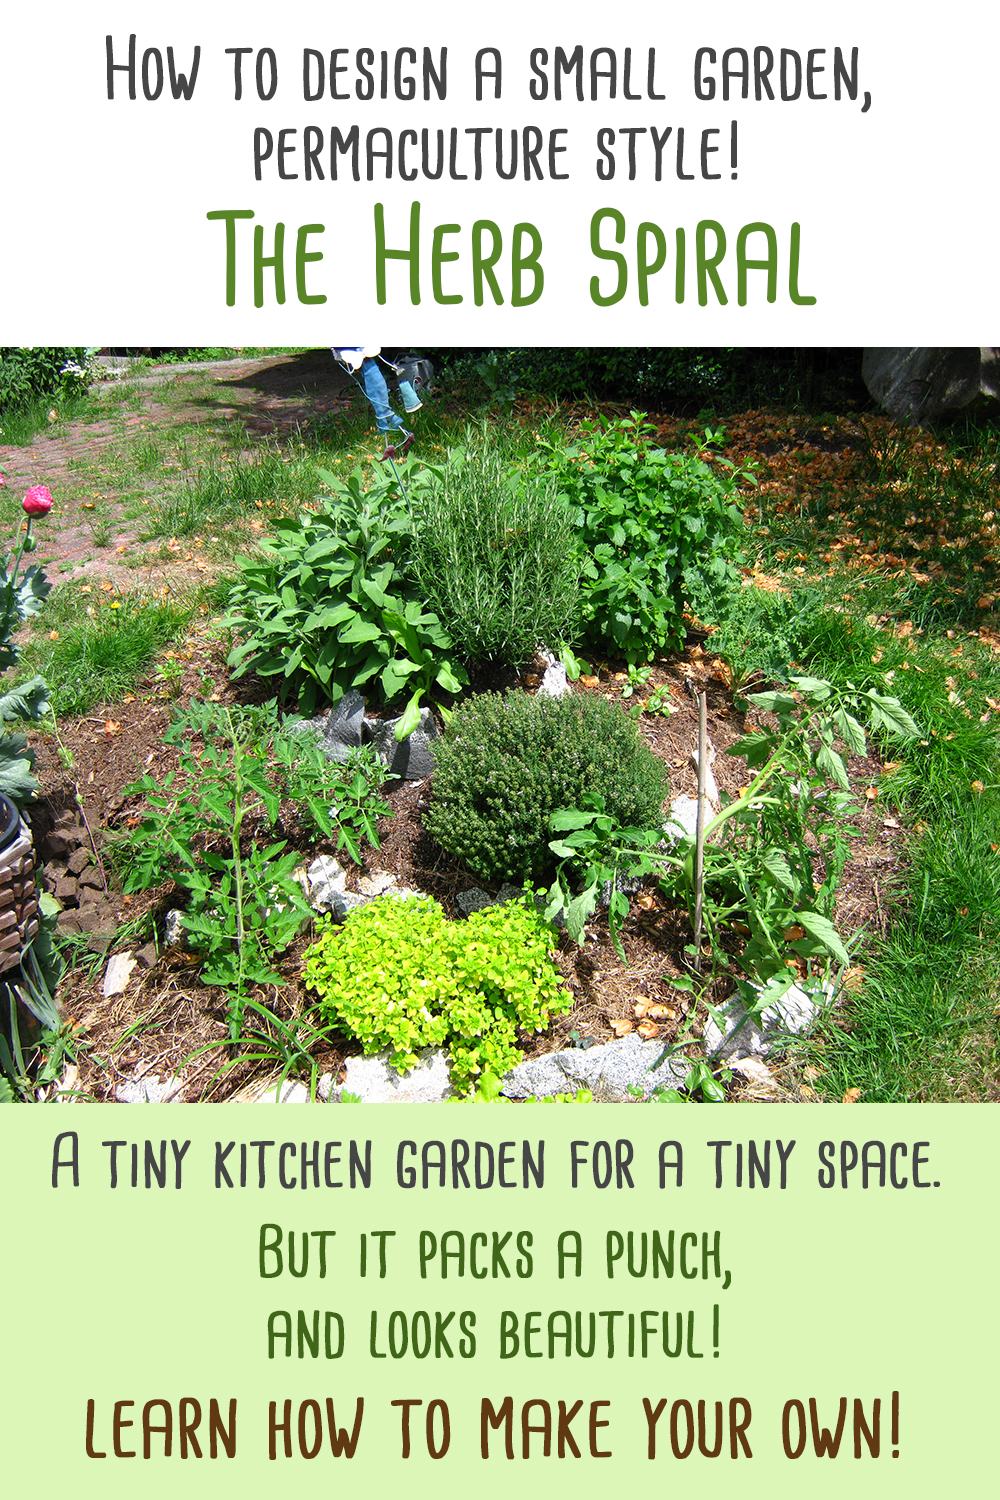 small garden permaculture herb spiral